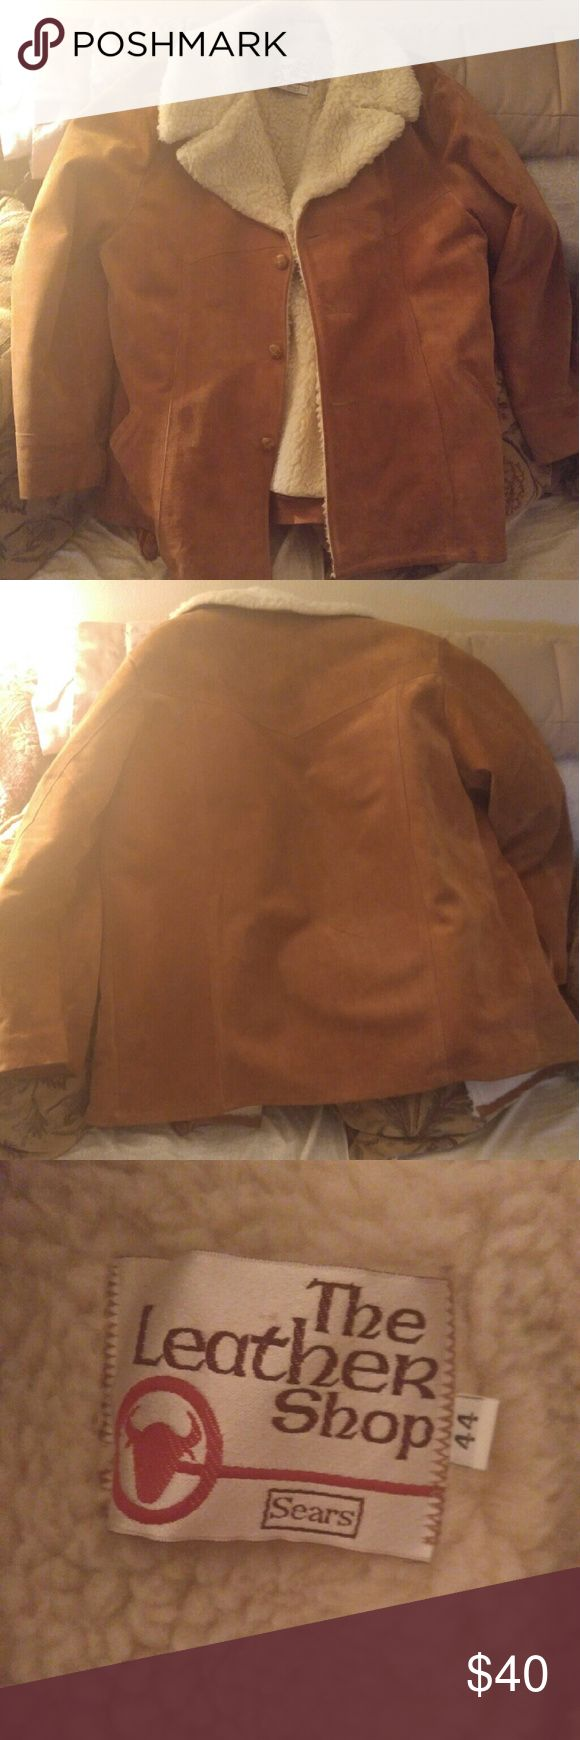 Marlboro man from Sears the leather shop sz 44 Vintage Marlboro man sz 44 leather coat from The Leather Shop at Sears, beautiful condition except for pulling at left shoulder seam pictured. Sears Jackets & Coats